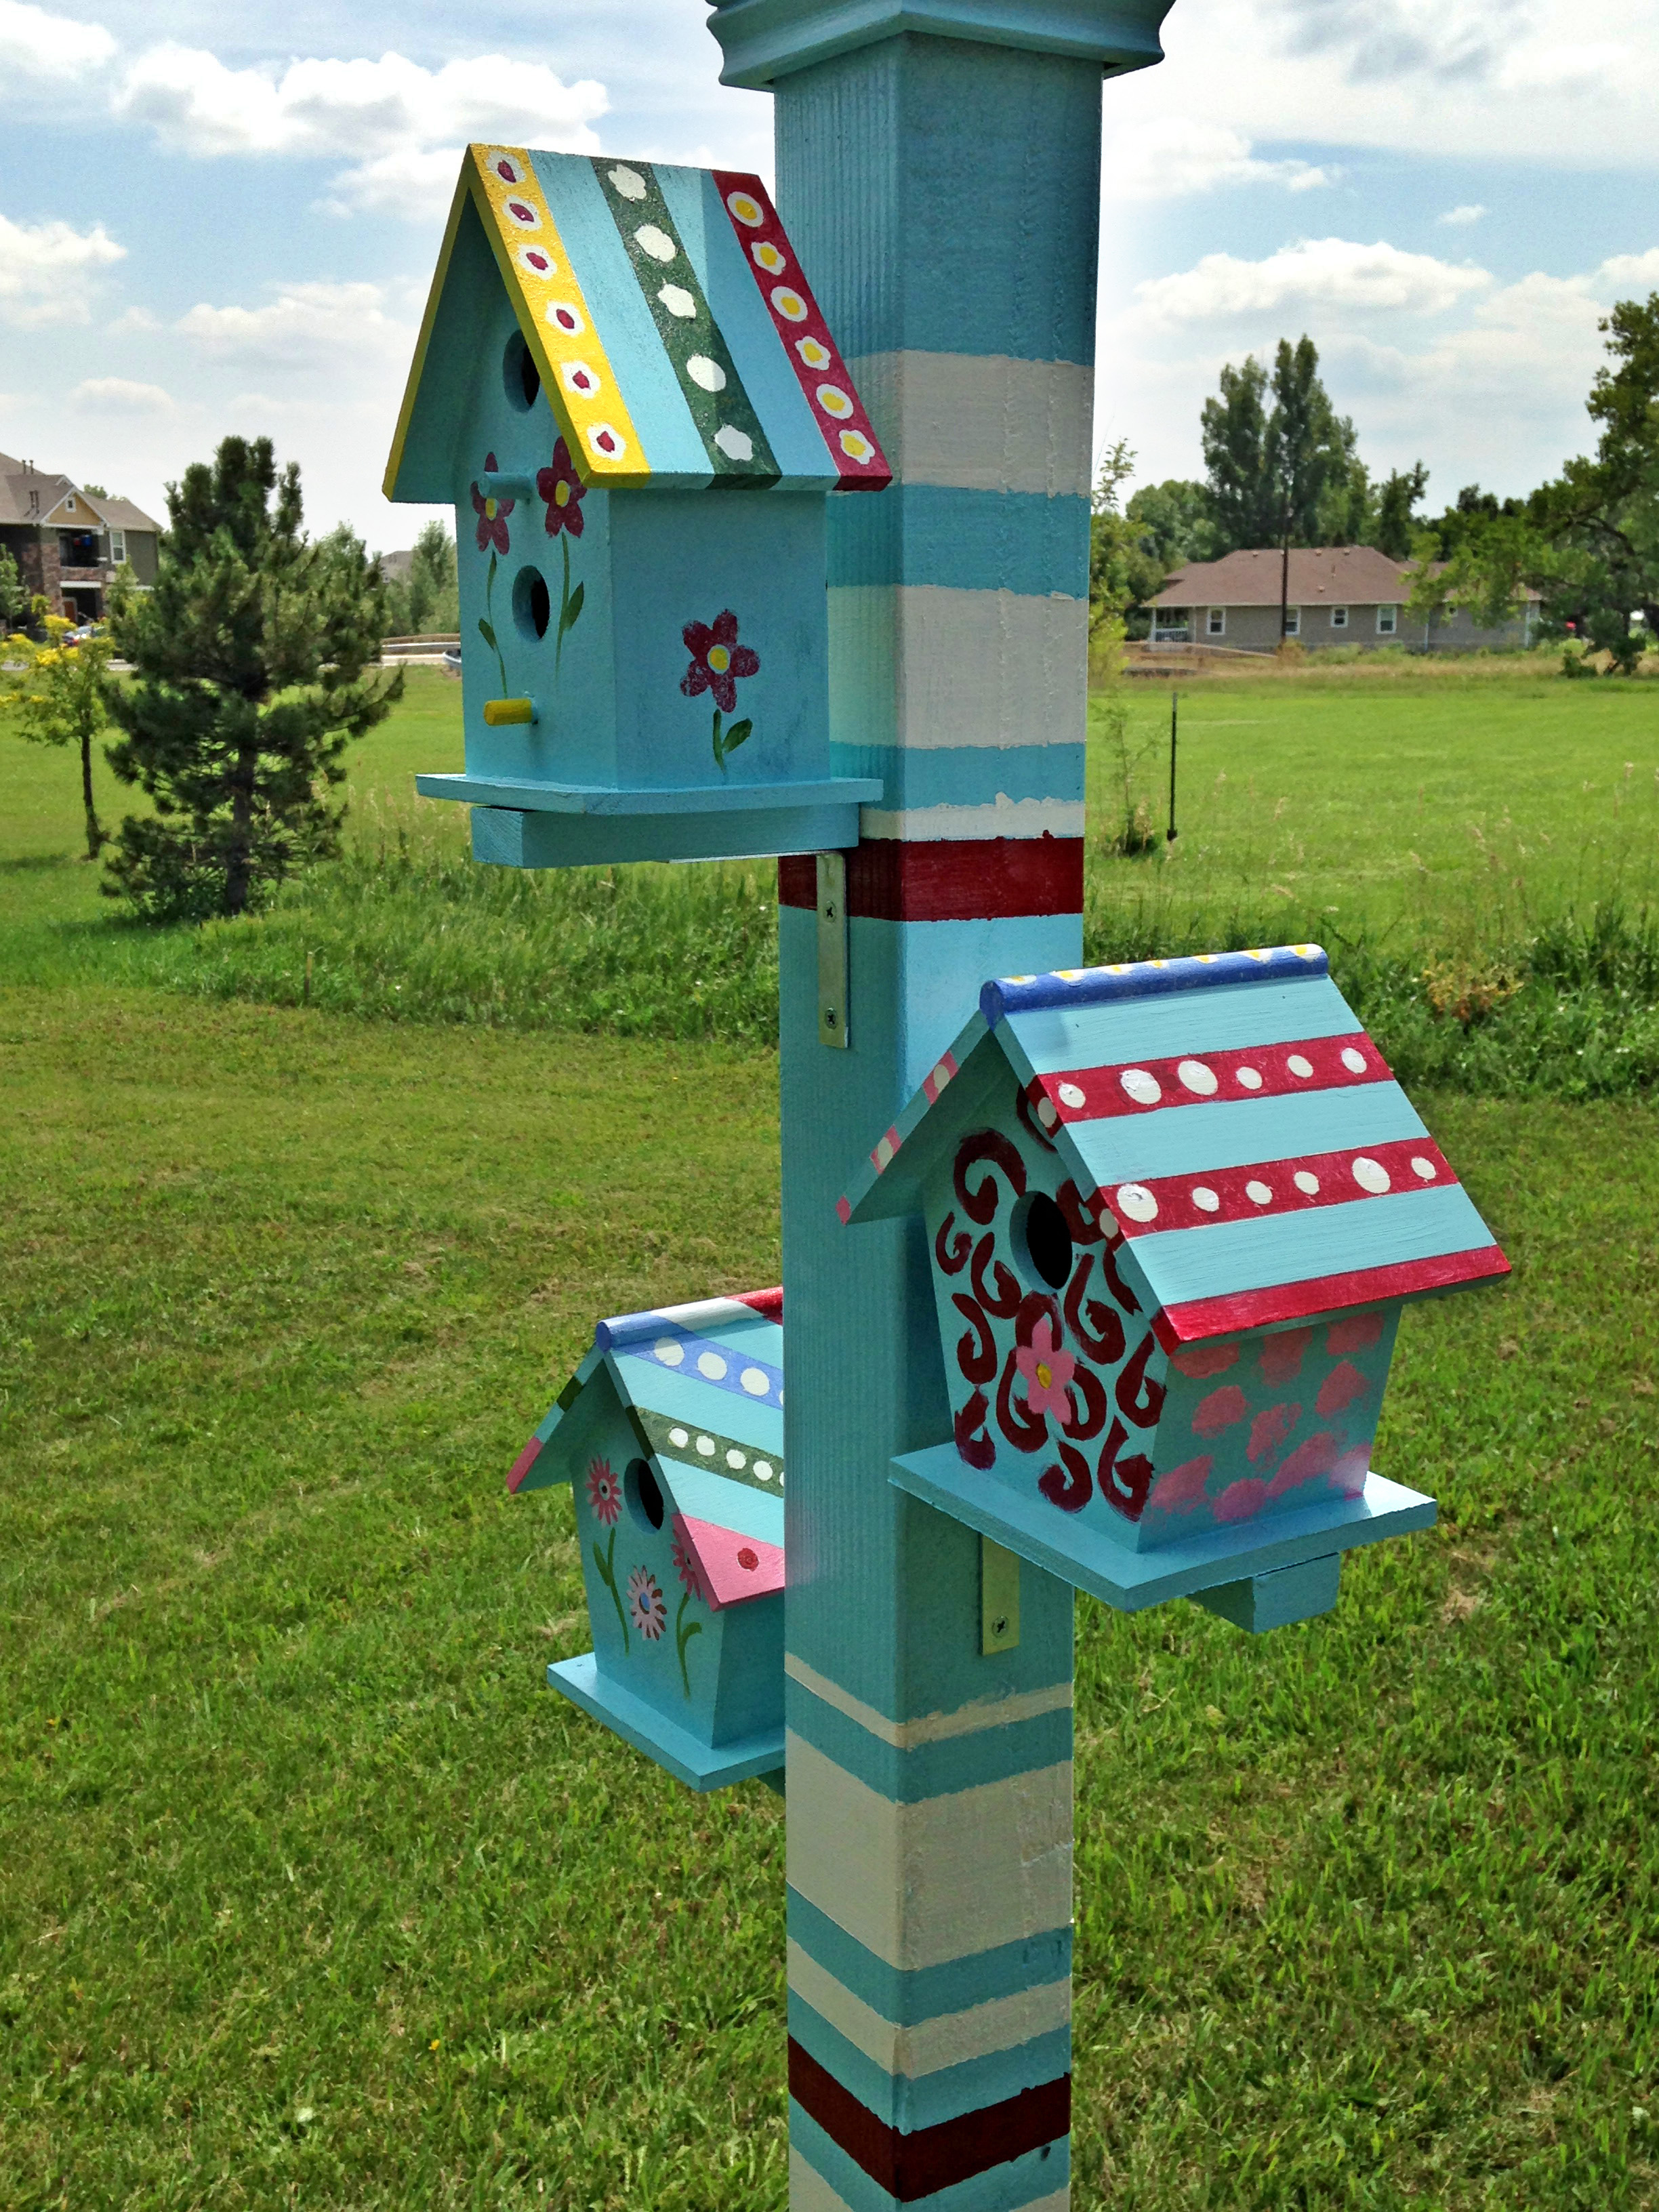 Bird houses built by Sunday School children.